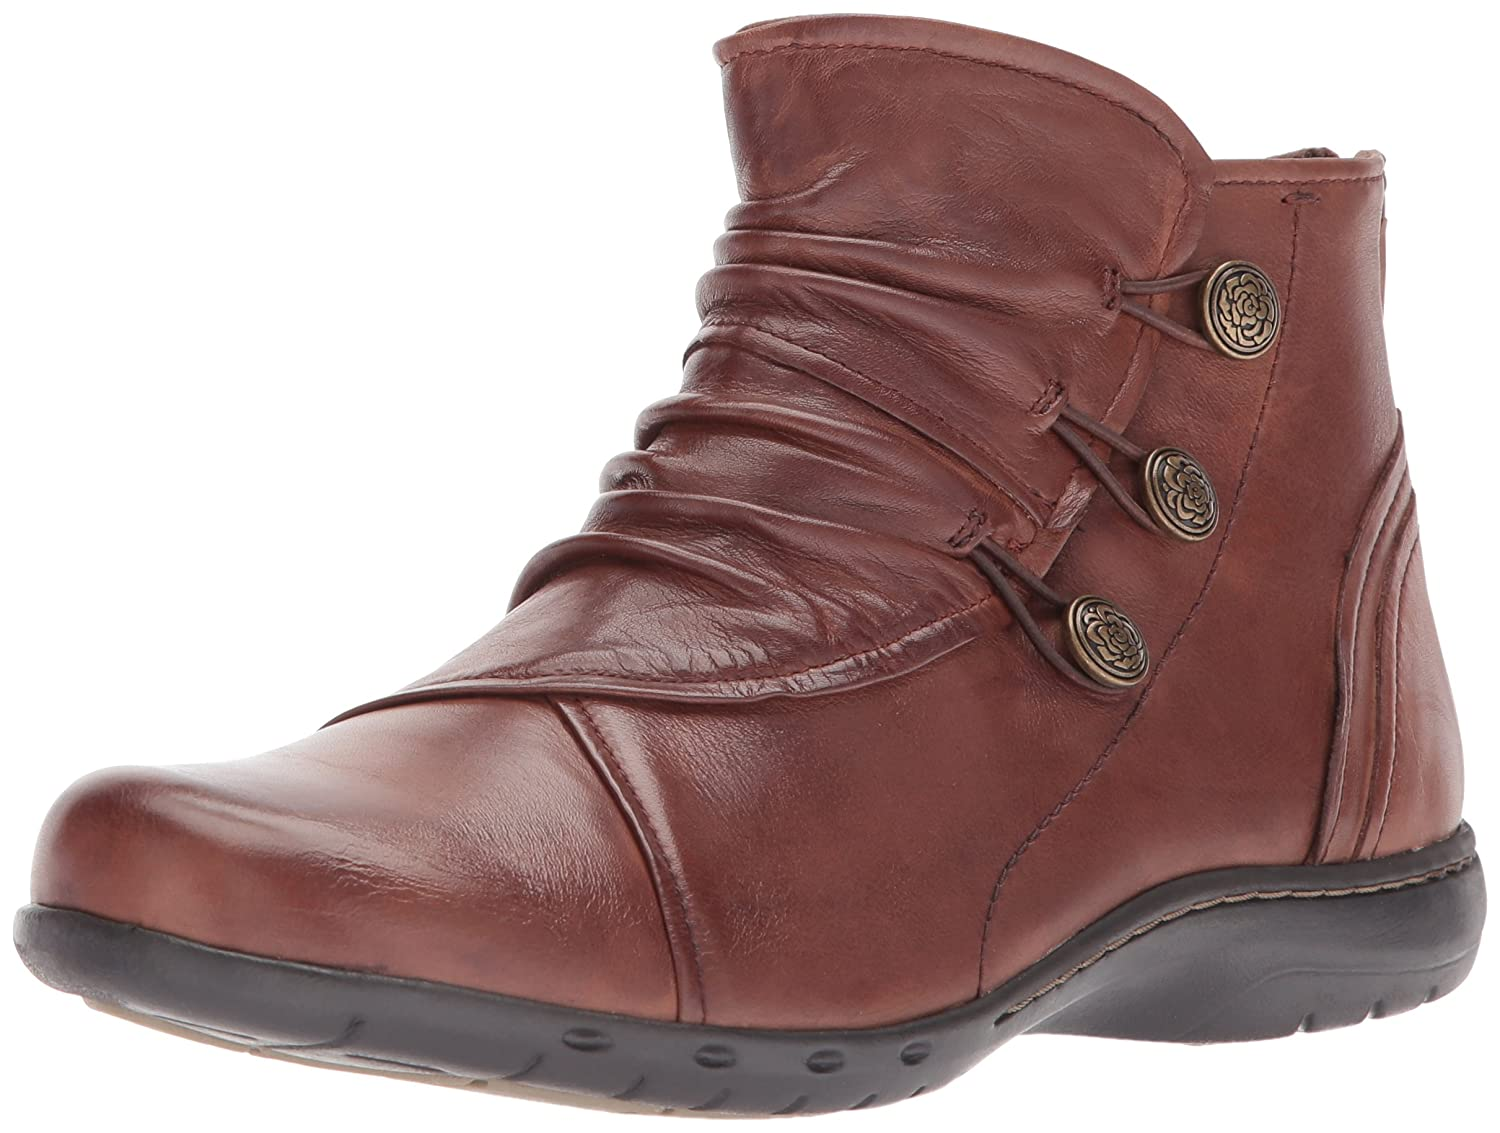 Rockport Colline Colline Cobb Collectioncobb Penfield Botte Vente Nicekicks bNNKTn